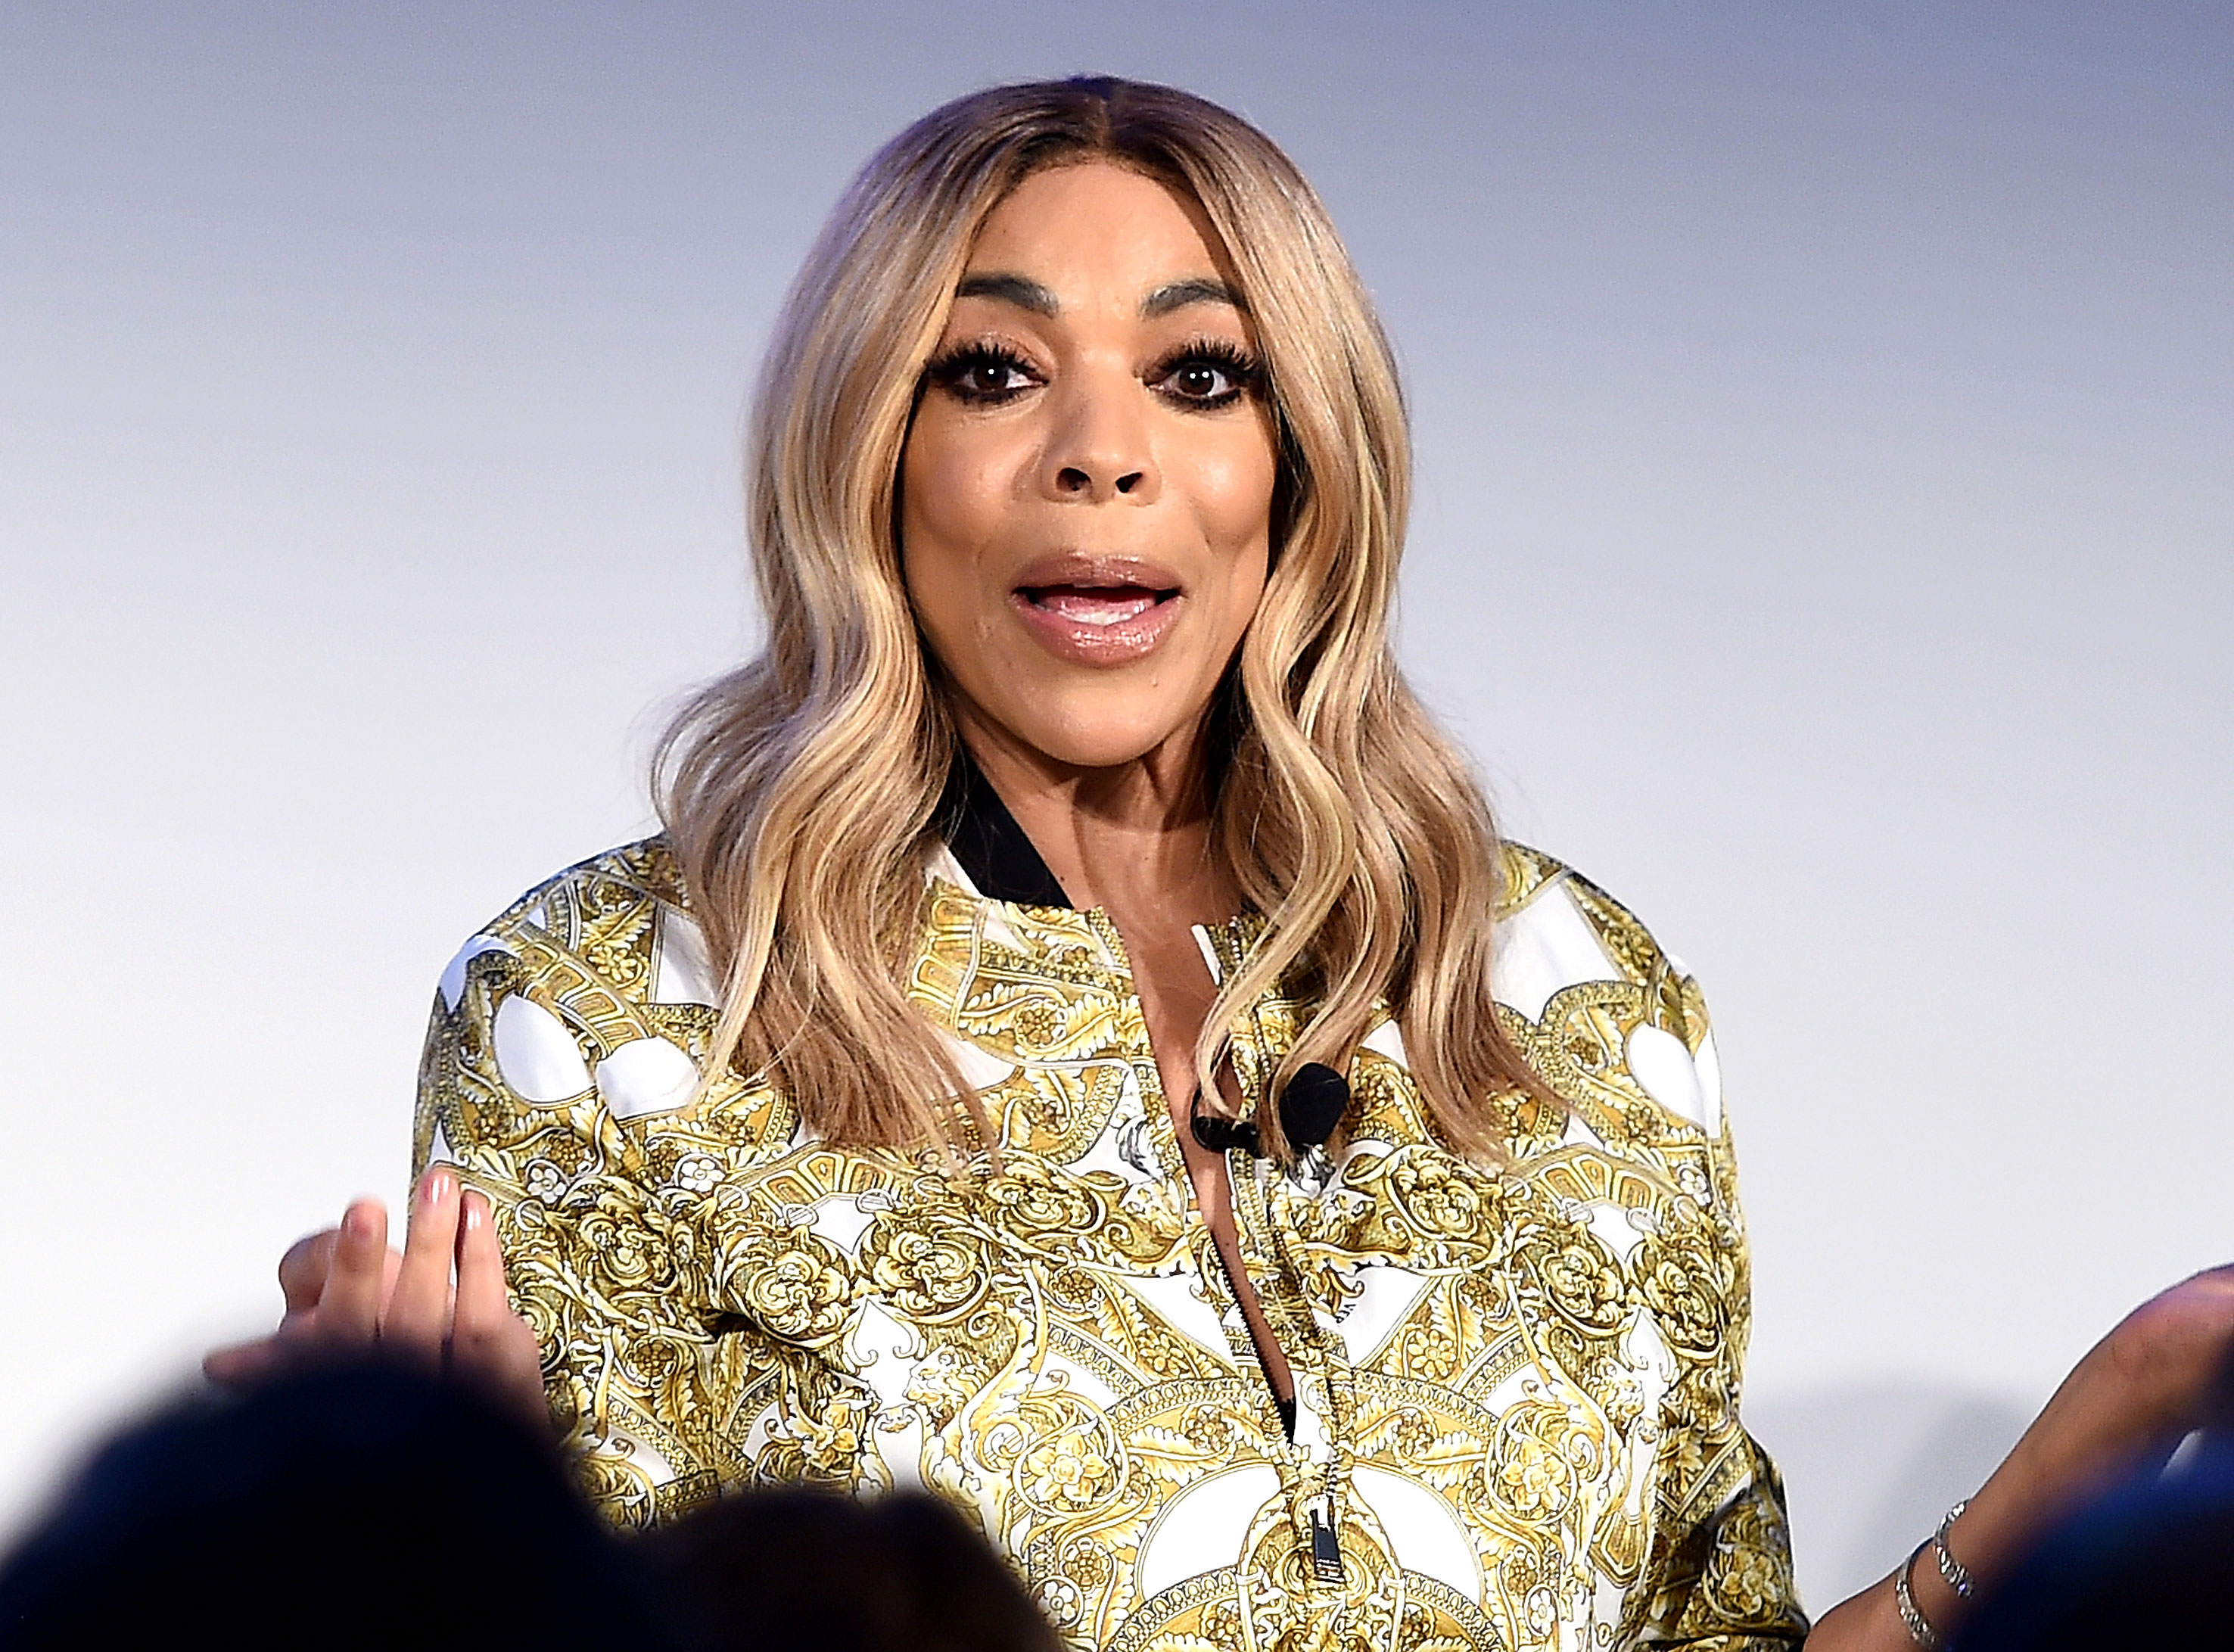 Wendy William's Sobriety Is a 'Work in Progress' - Wendy Williams speaks onstage at Vulture Festival Presented By AT&T: ASK WENDY WILLIAMS at Milk Studios on May 19, 2018 in New York City.